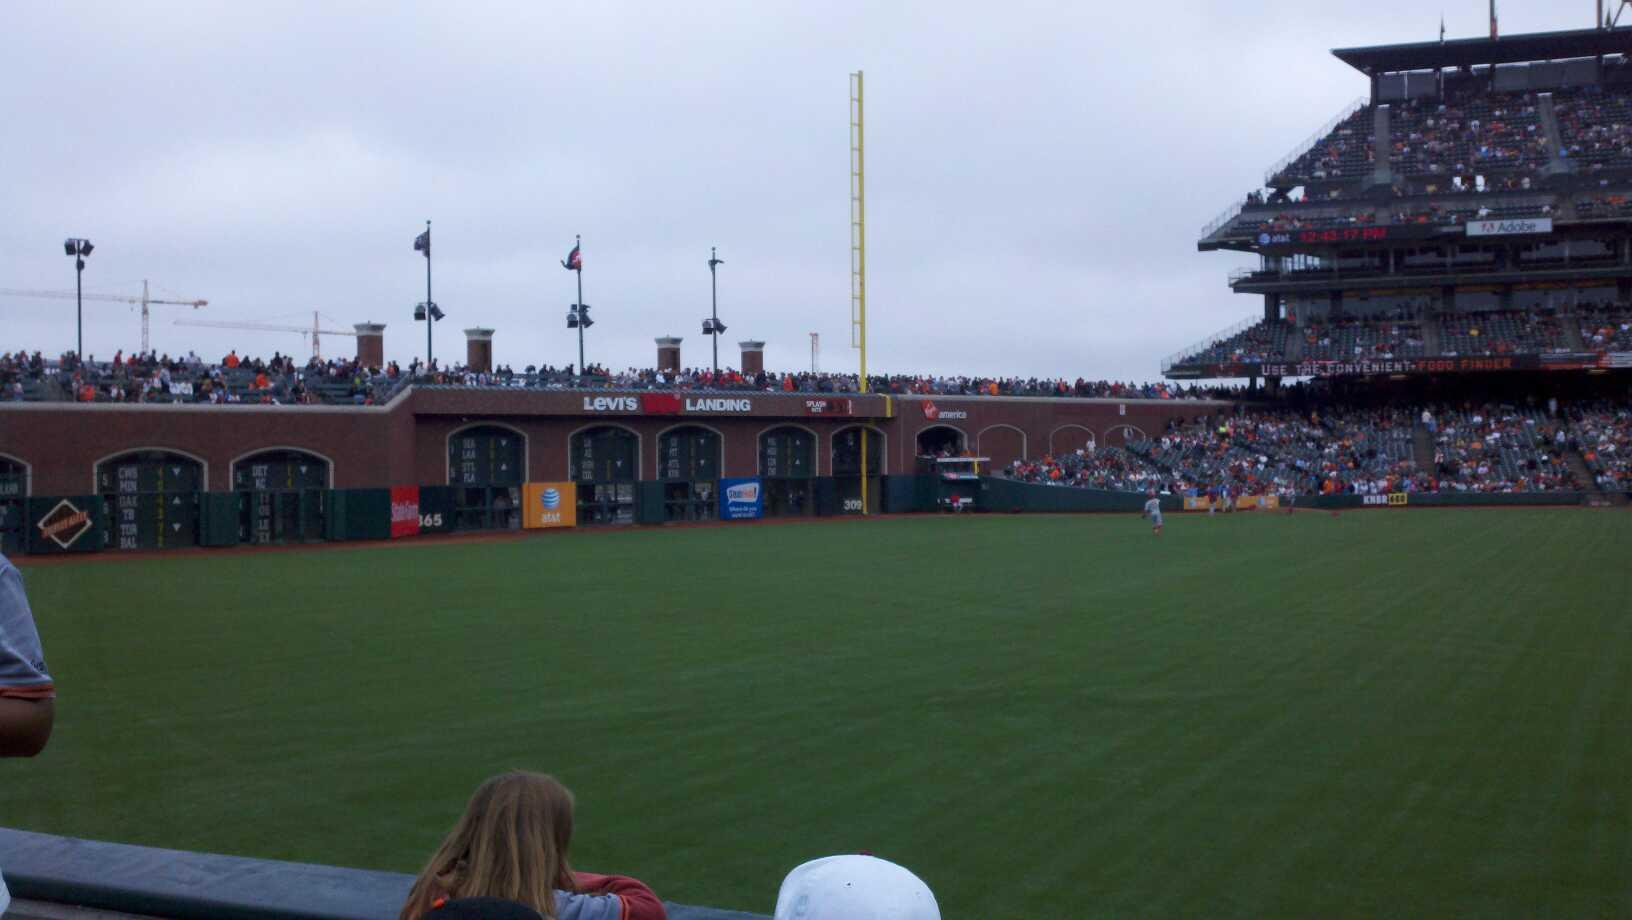 Oracle Park Section 140 Row 1 Seat 8